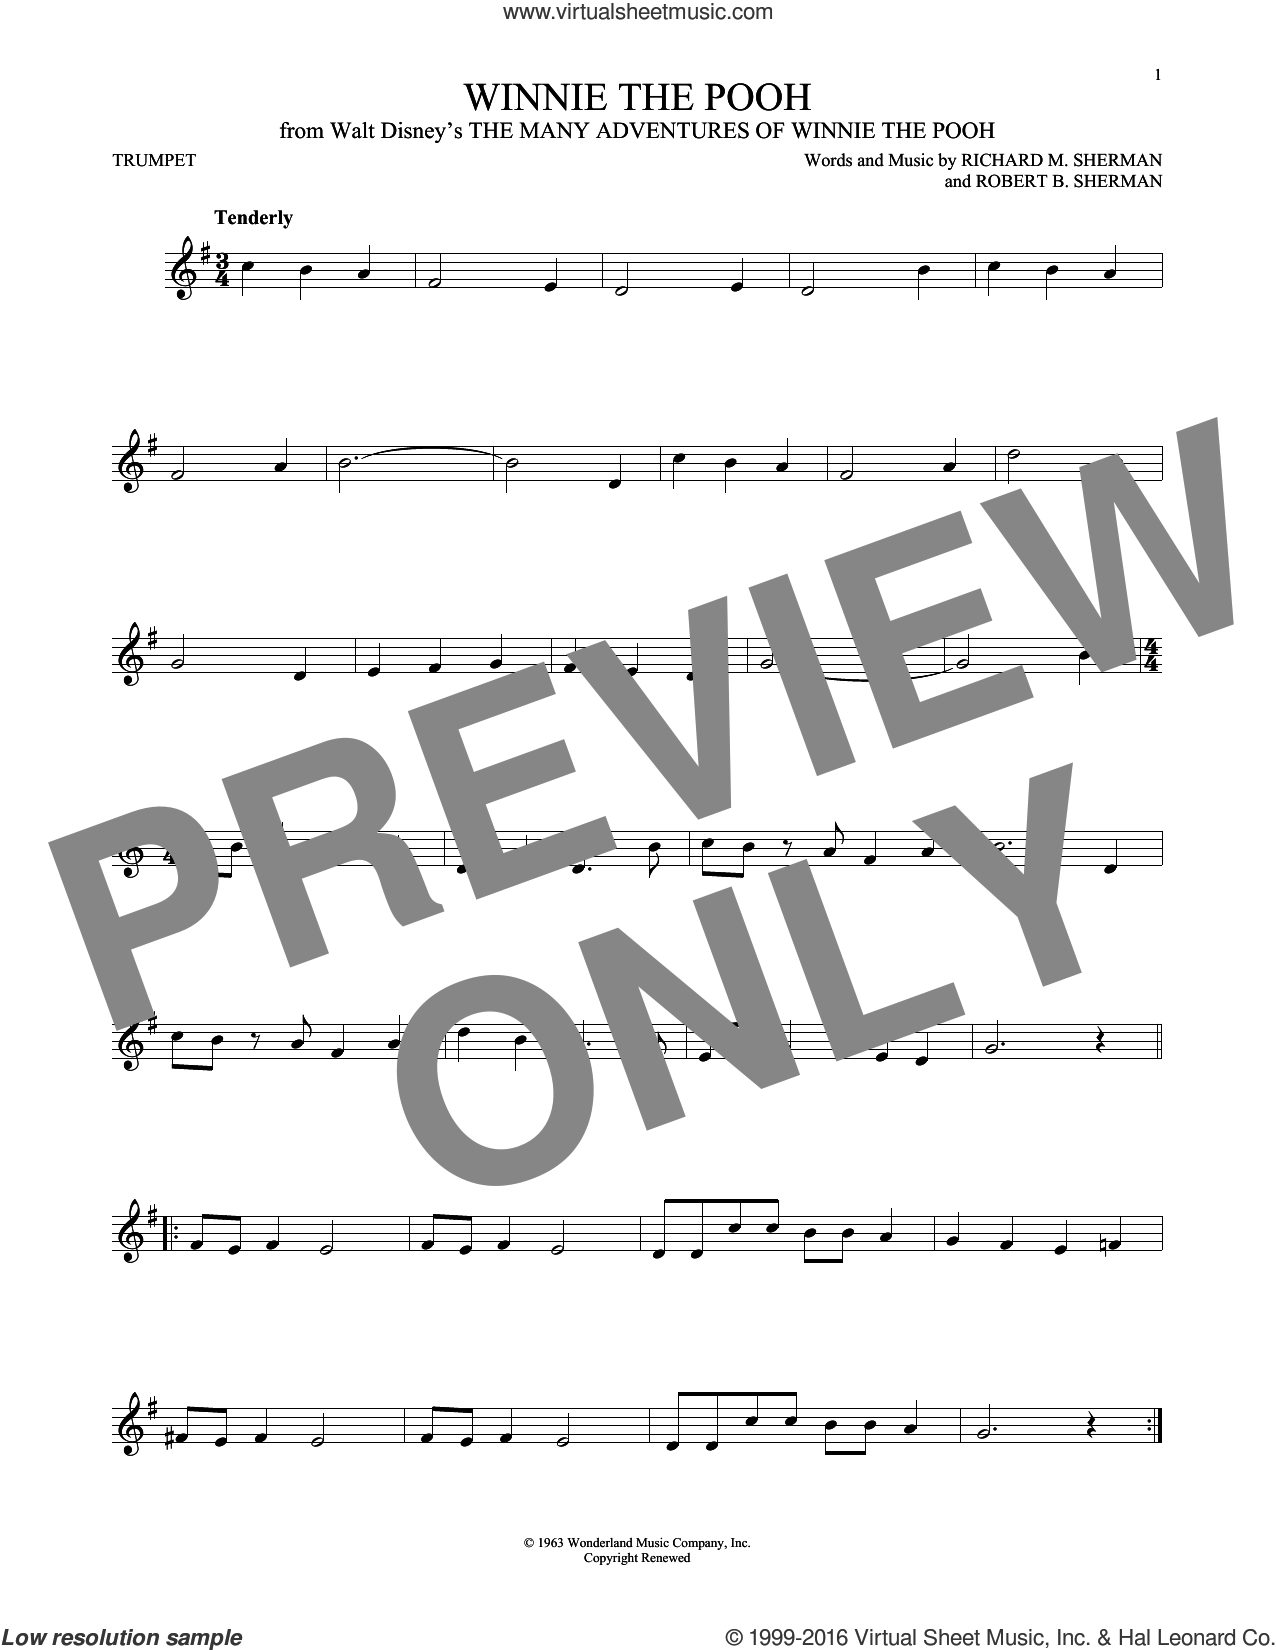 Winnie The Pooh sheet music for trumpet solo by Richard M. Sherman and Robert B. Sherman, intermediate skill level